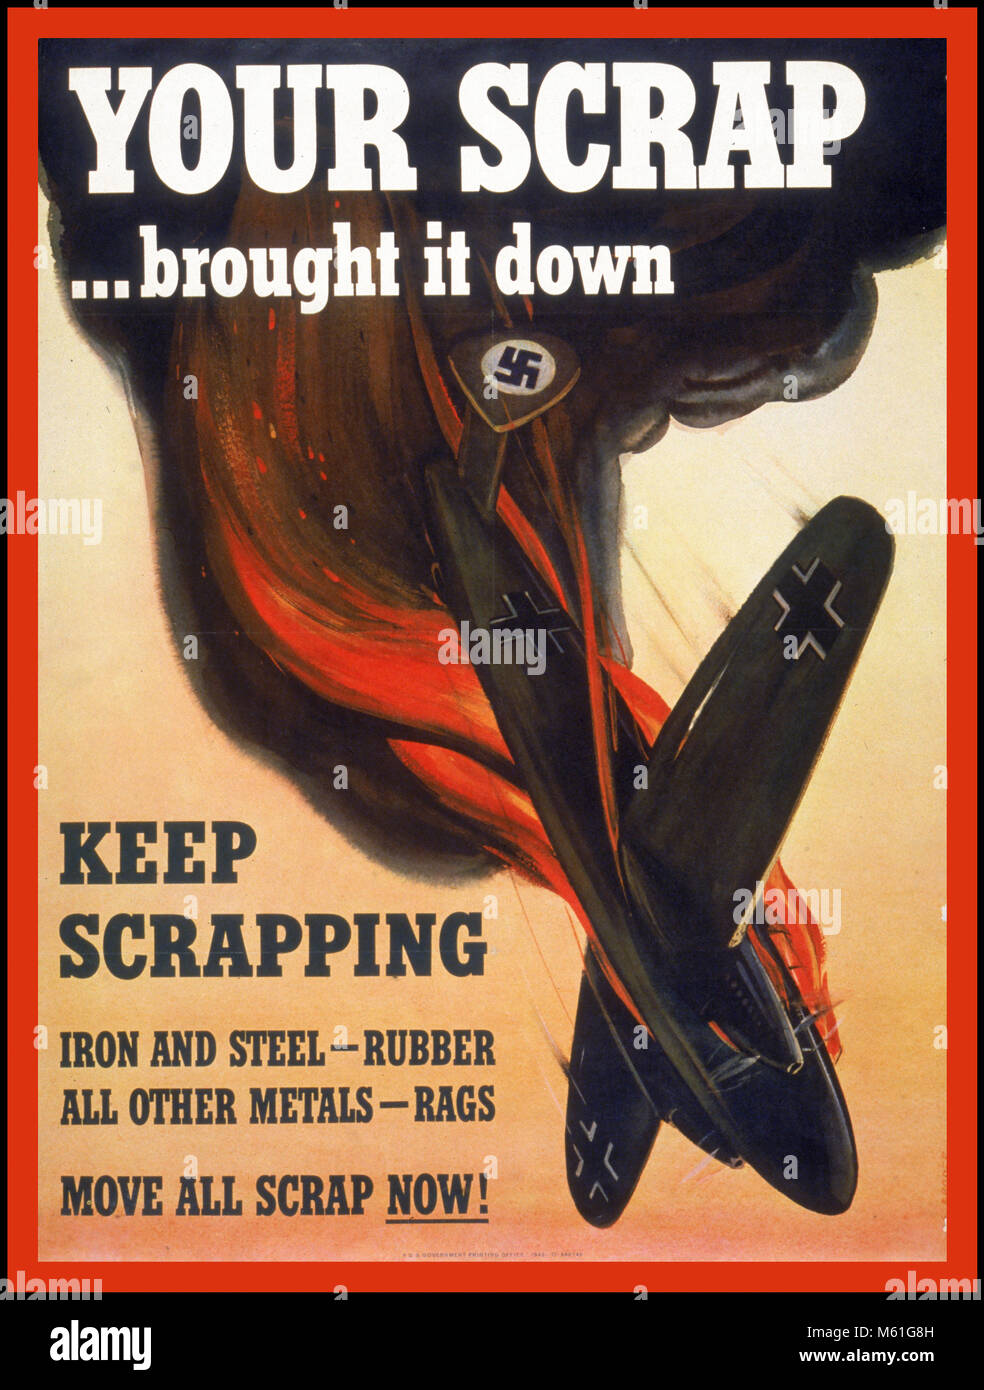 VINTAGE PROPAGANDA USA WW2 POSTER 'YOUR SCRAP BROUGHT IT DOWN.' asking the American public to recycle metal - Stock Image